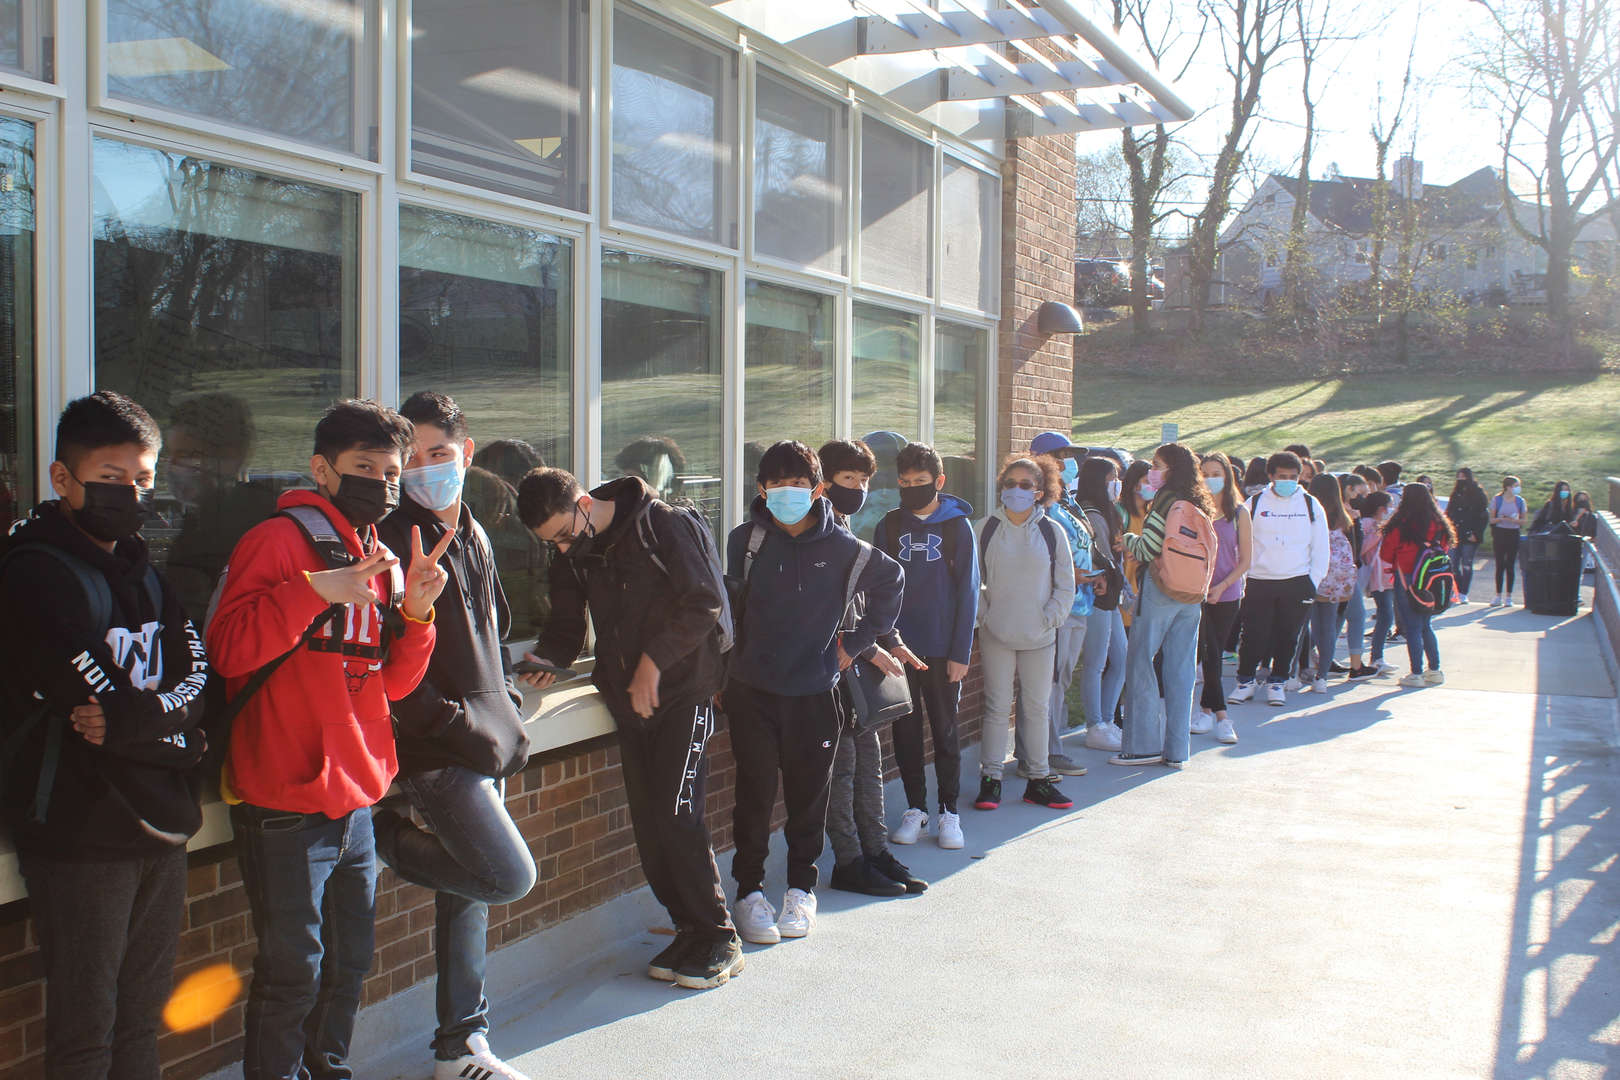 Students waiting outside to go into school building